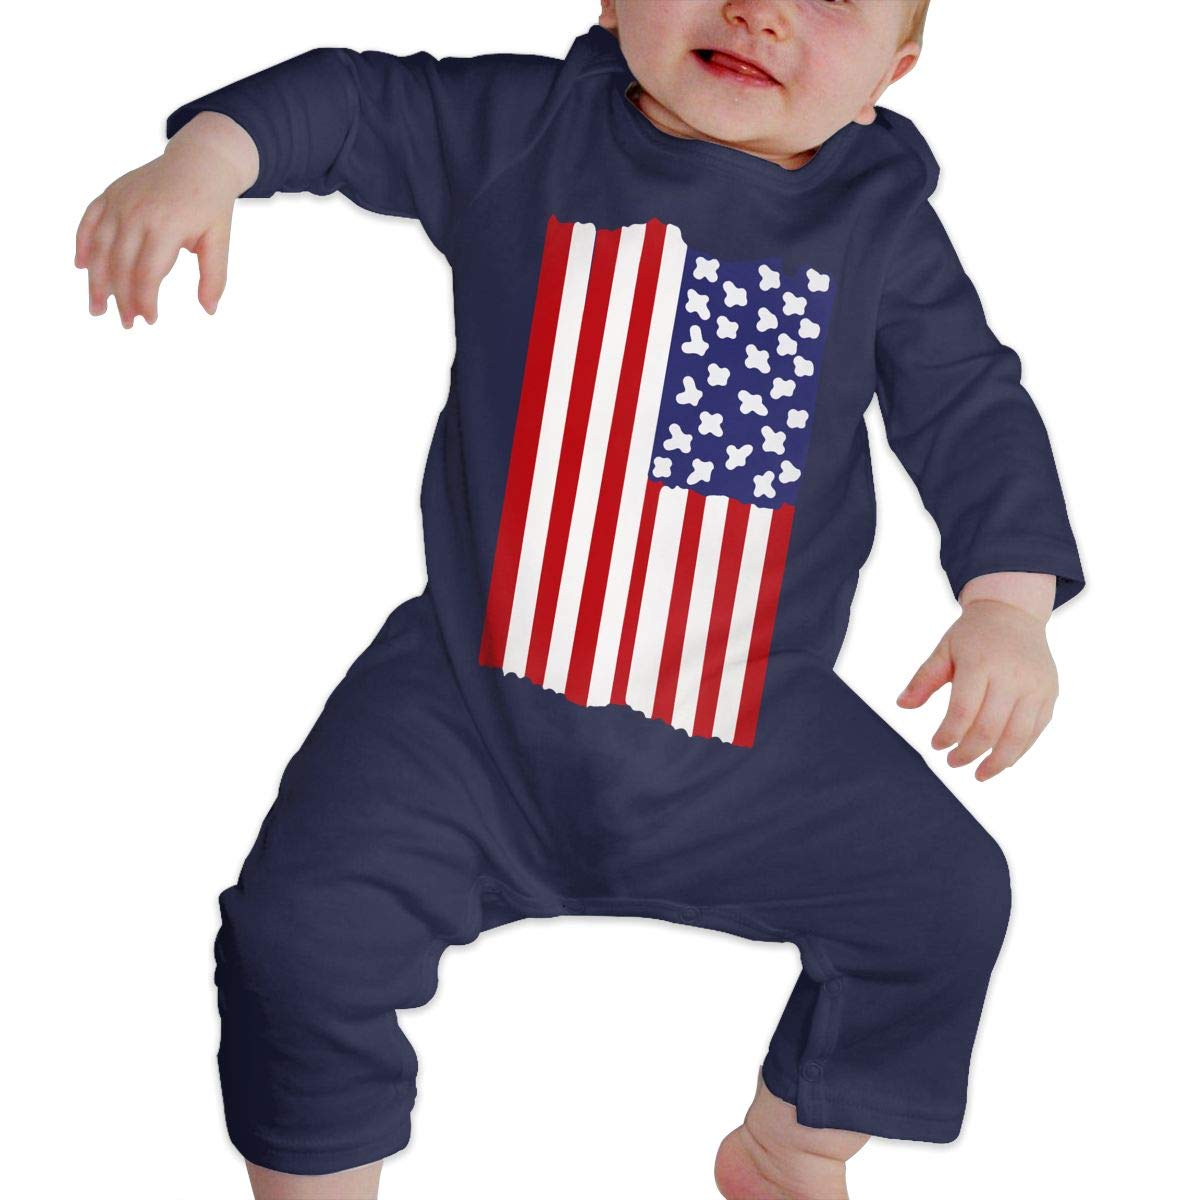 LBJQ8 American Flag Vertical Baby Boys Soft /& Breathable Bodysuit Jumpsuit Outfits